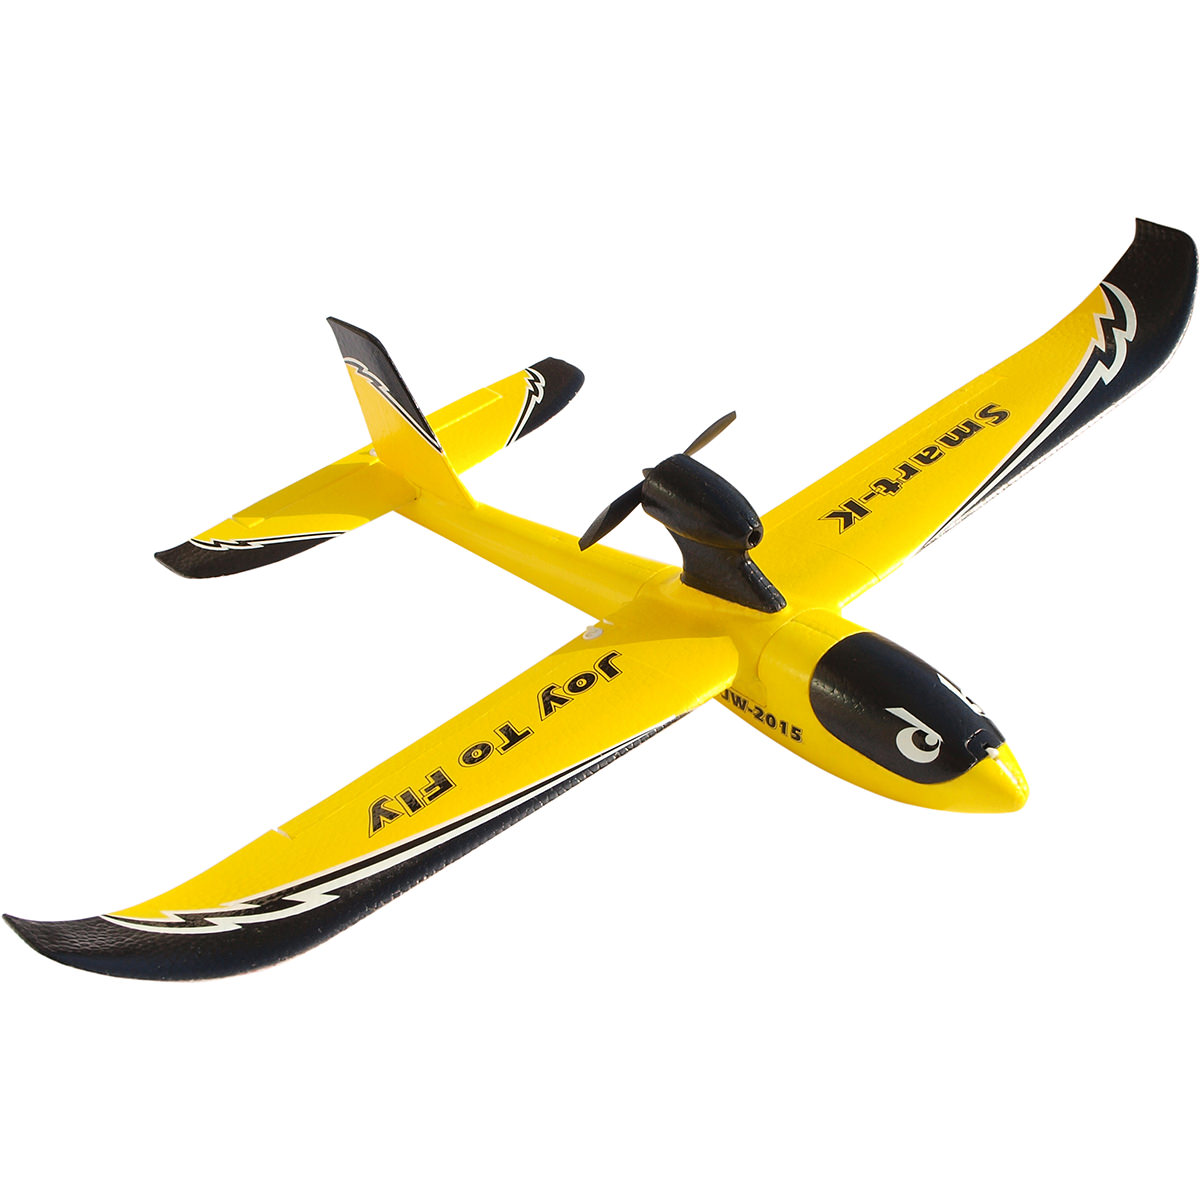 hobby horse rc with Joysway 6106 Smart K V2 Rc Glider Mode 2 on hobbyflip p10421x Drone Nano H107r Lipo 37v Usb Battery Charger Any Mah Auto Shut Off W Led additionally Joysway 8301 Red Bullet Rc Speed Boat in addition 251354218471 also T40 20instruction 20manual furthermore Joysway 6106 Smart K V2 Rc Glider Mode 2.